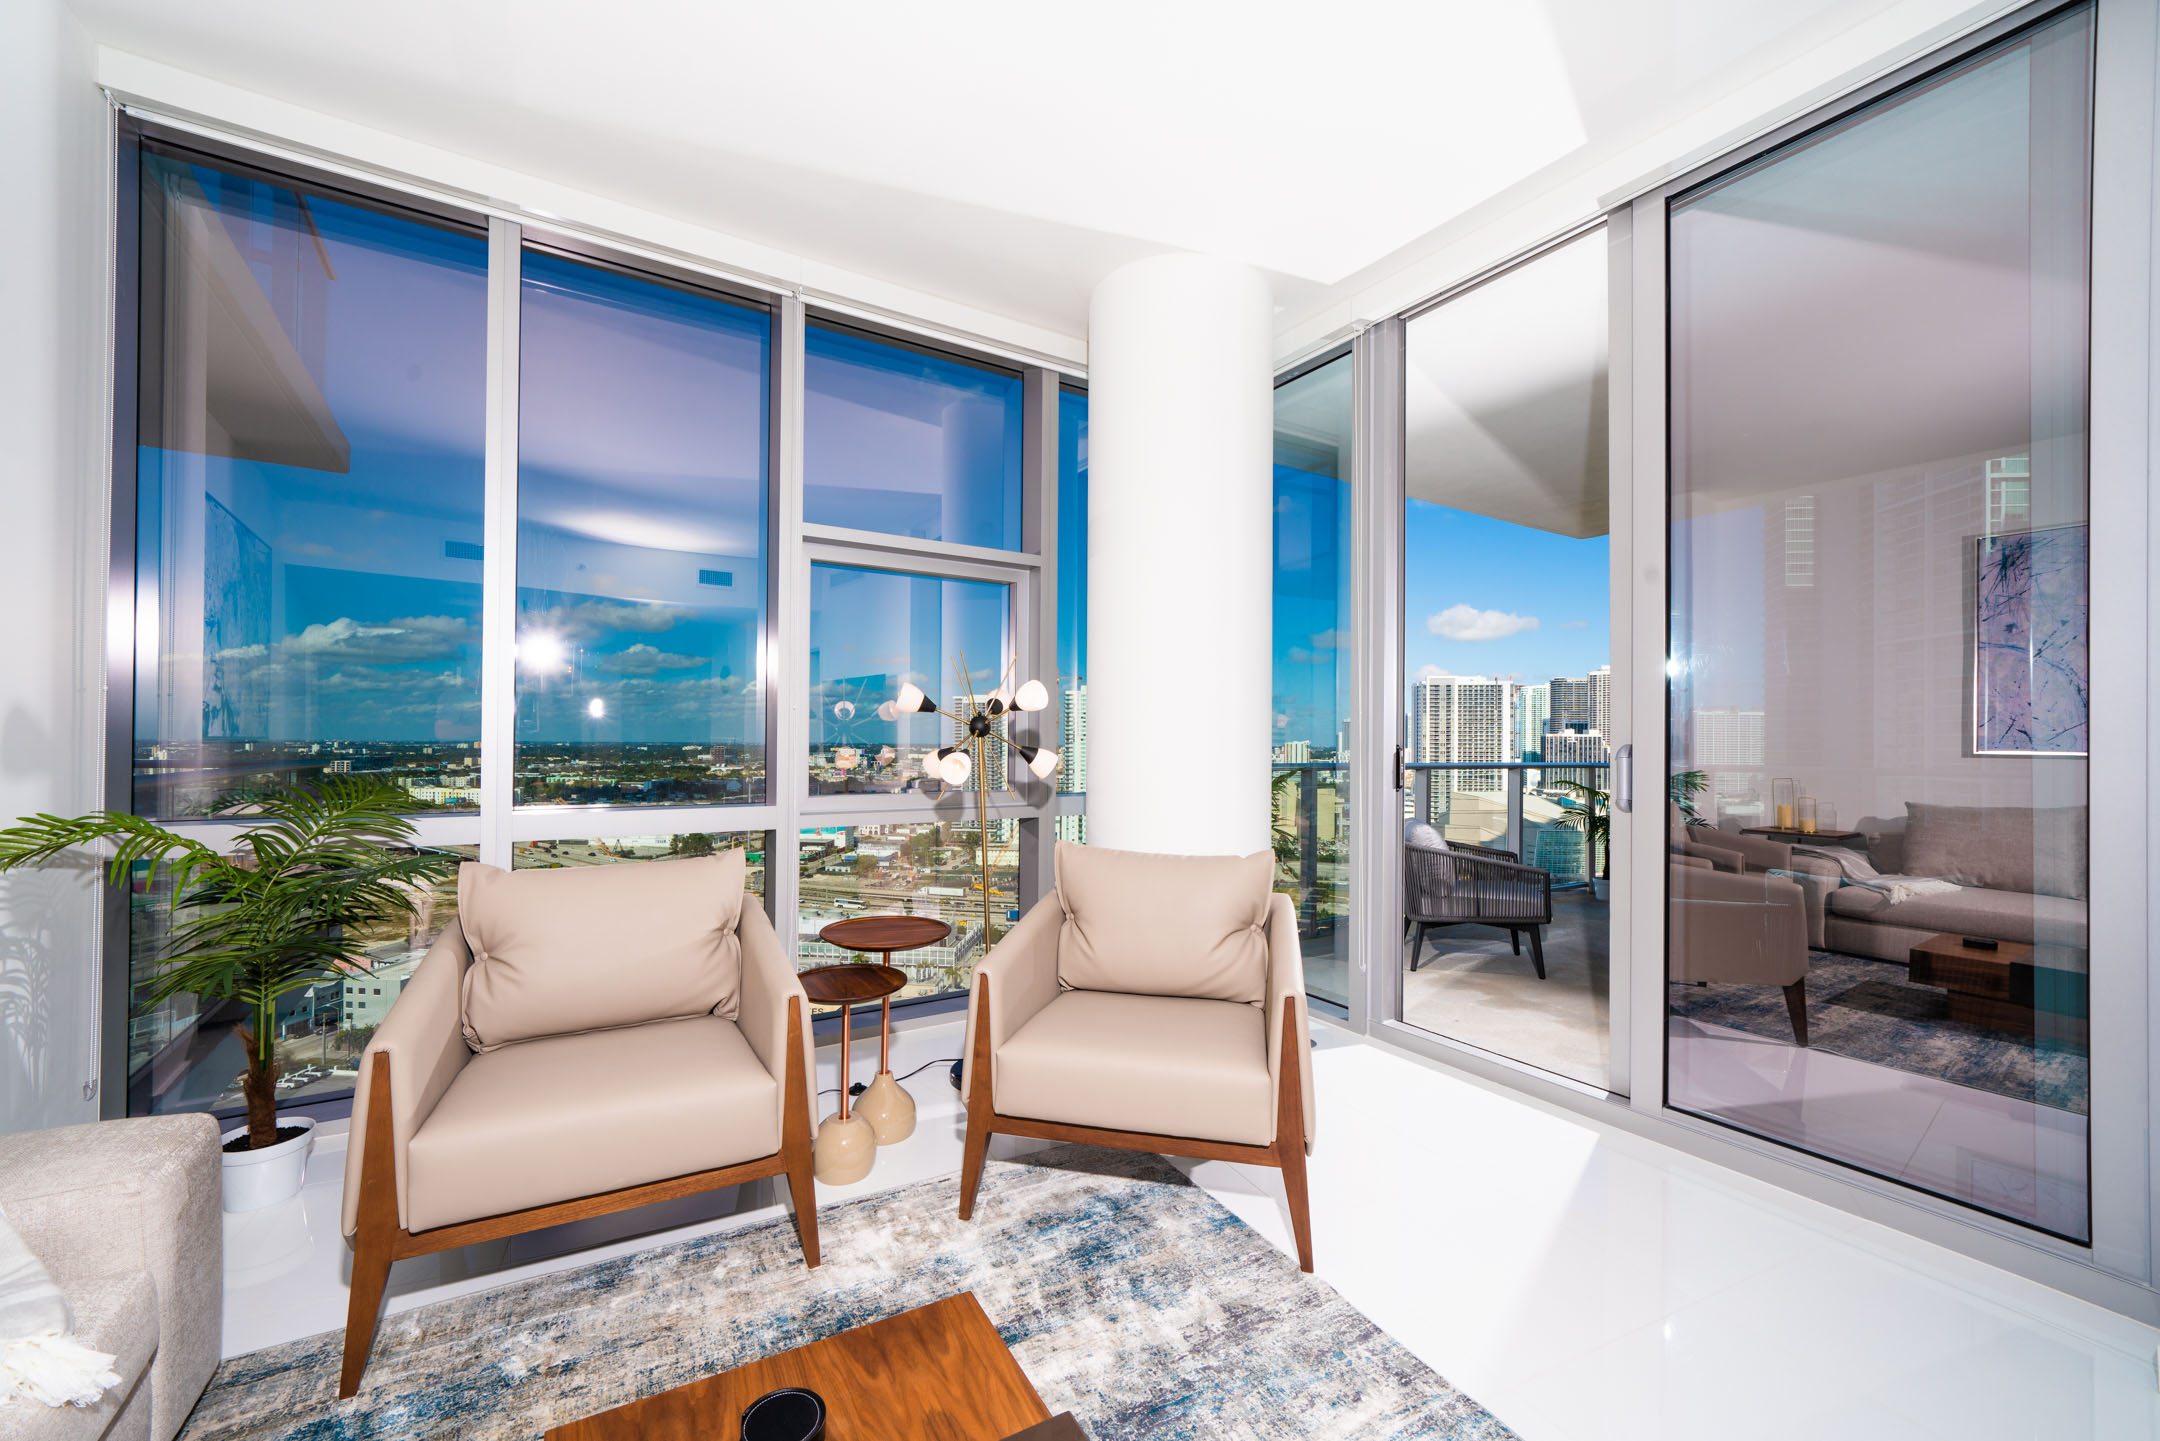 Florida Photography | Paramount Miami architecture | Steven Martine